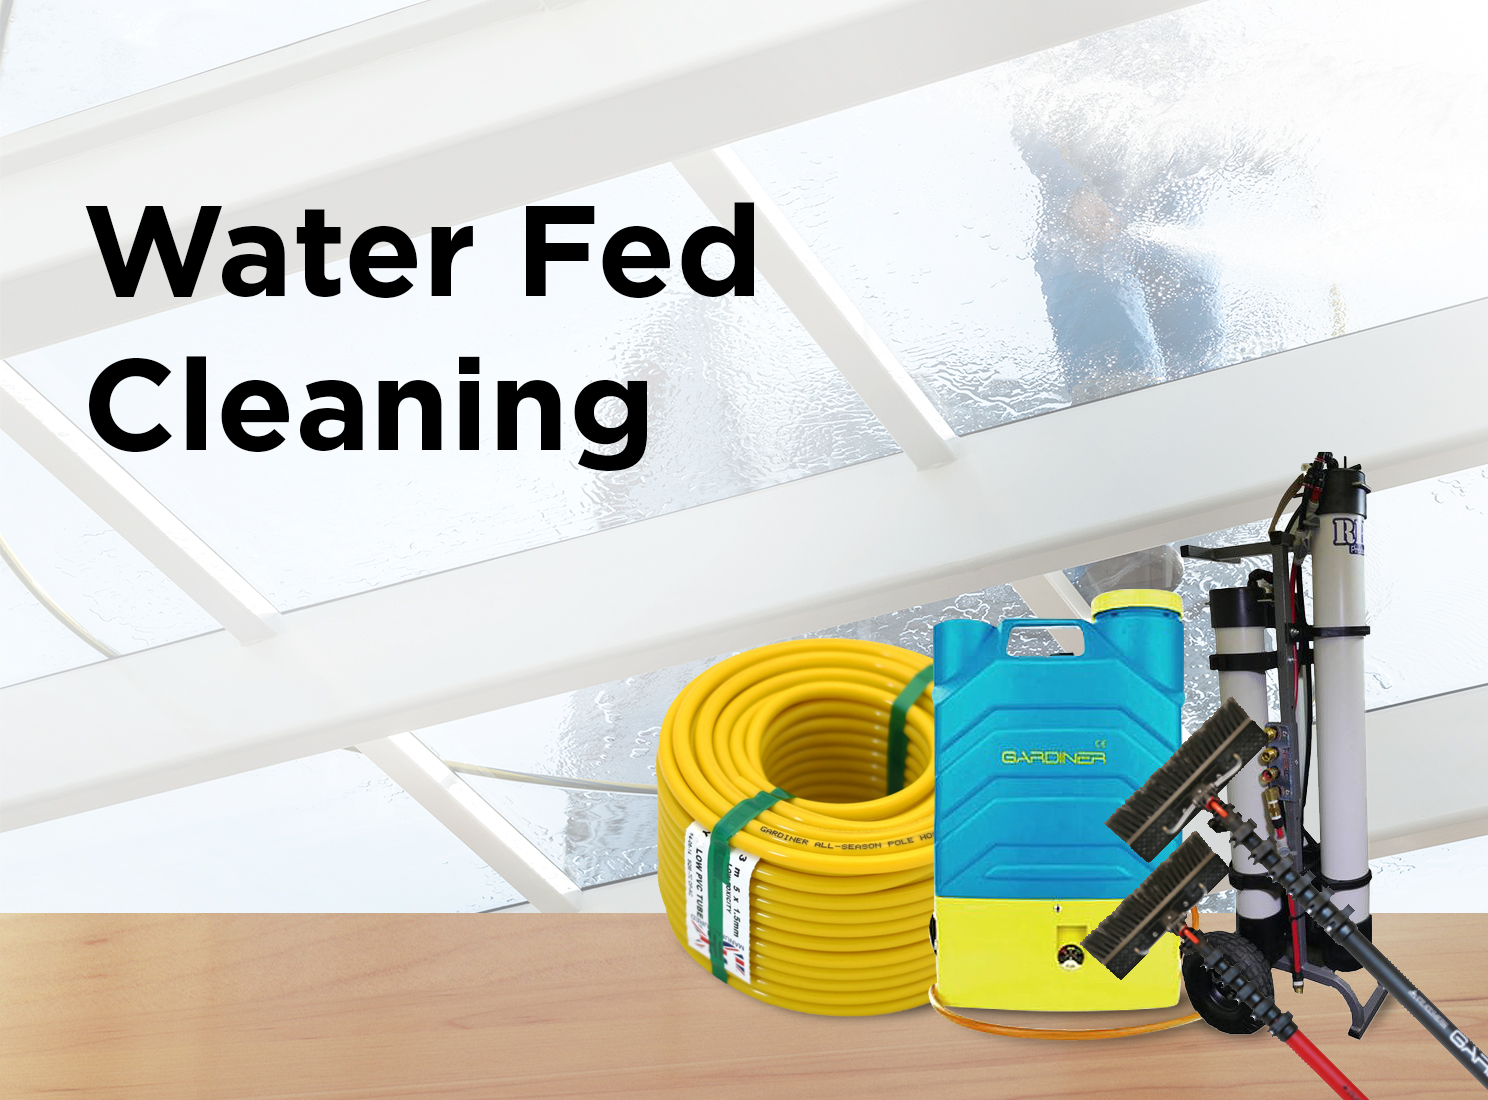 Water-Fed Cleaning